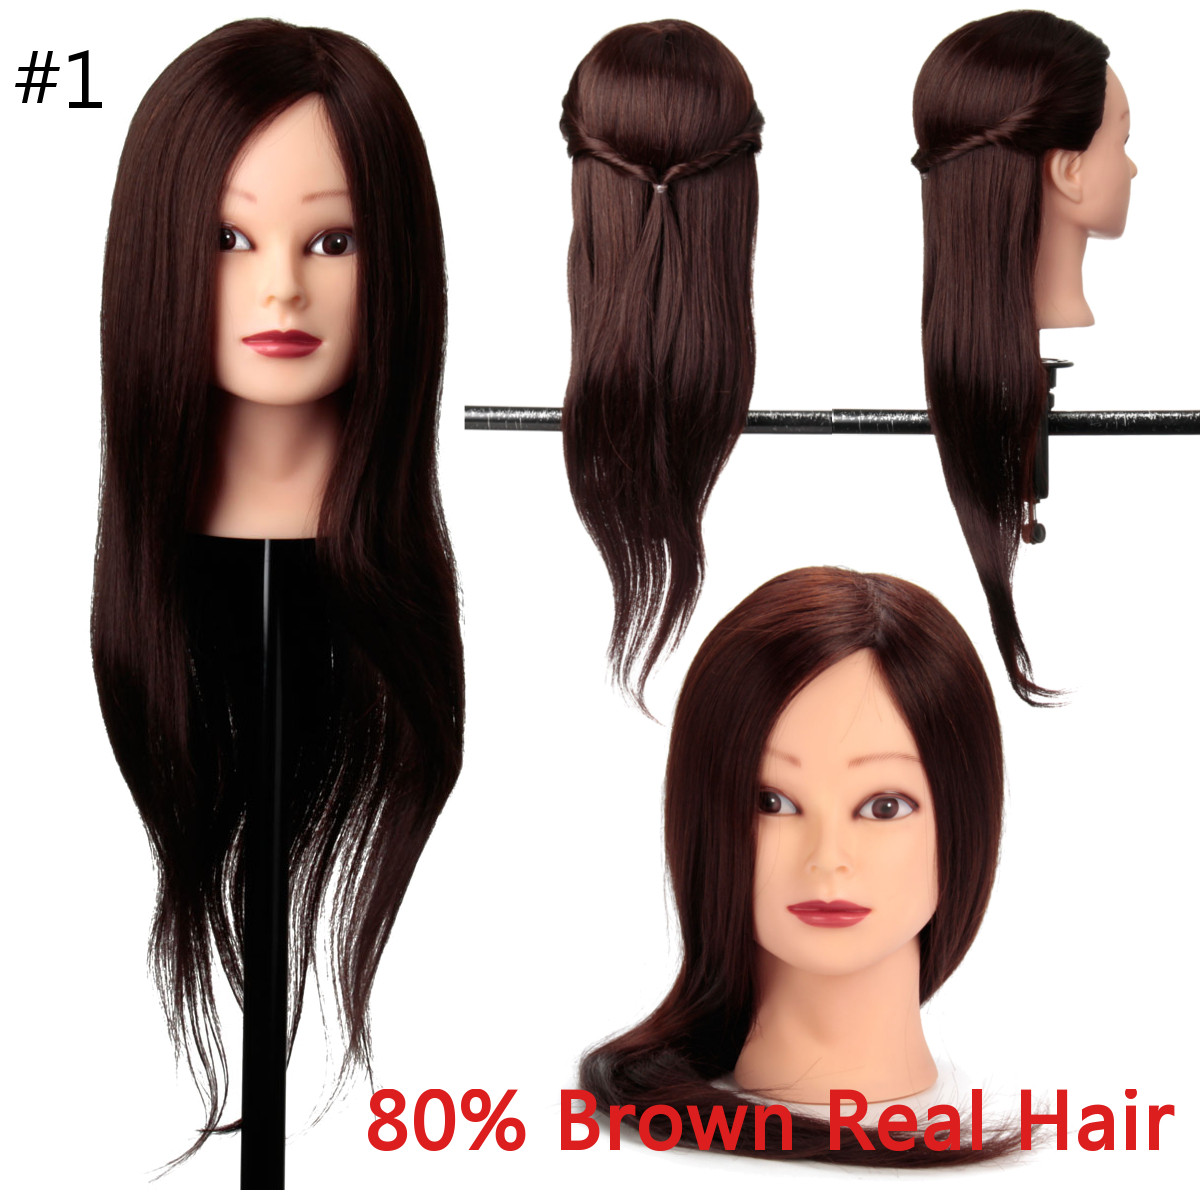 22-039-039-Real-Human-Hair-Salon-Hairdressing-Training-Head-Doll-Mannequin-Model-Clamp